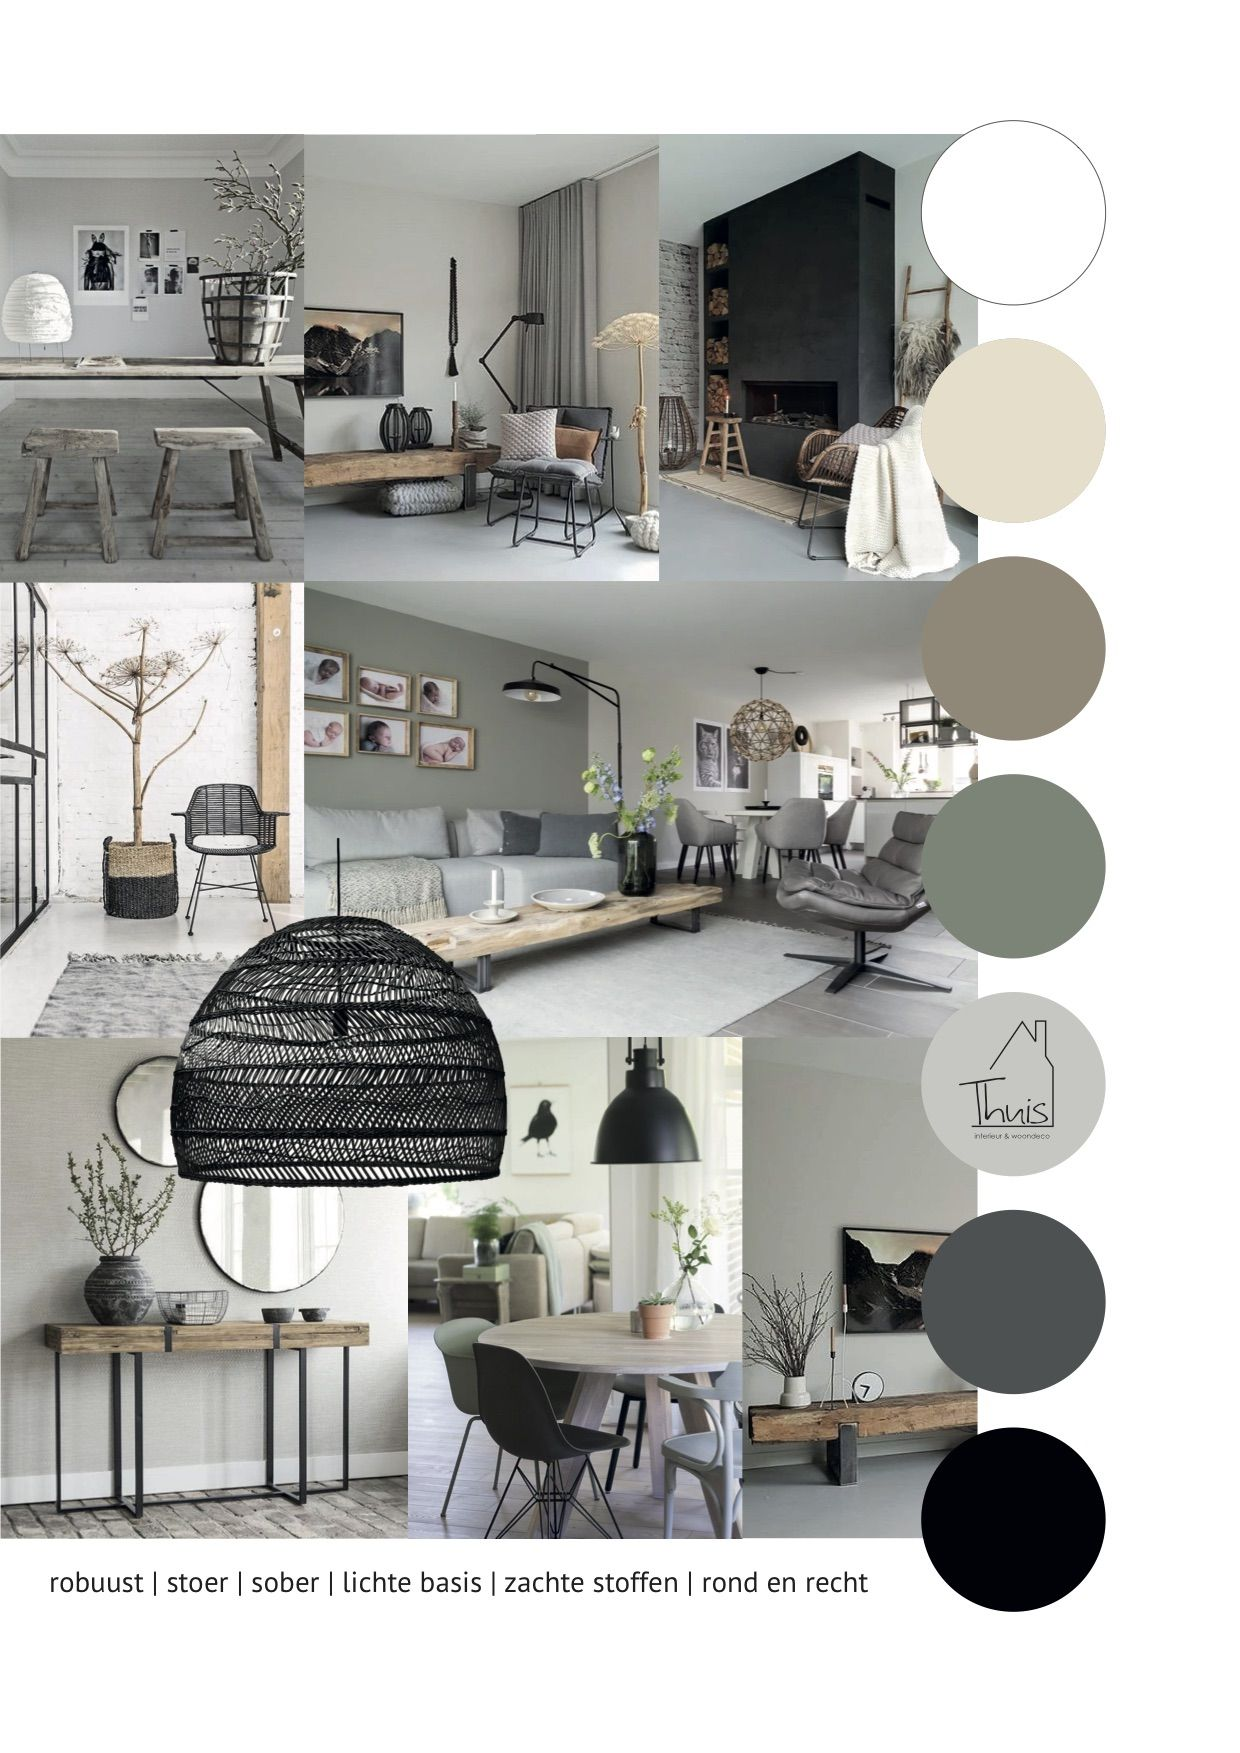 Portfolio 12 Stoere woonkamer - THUIS interieur & woondeco